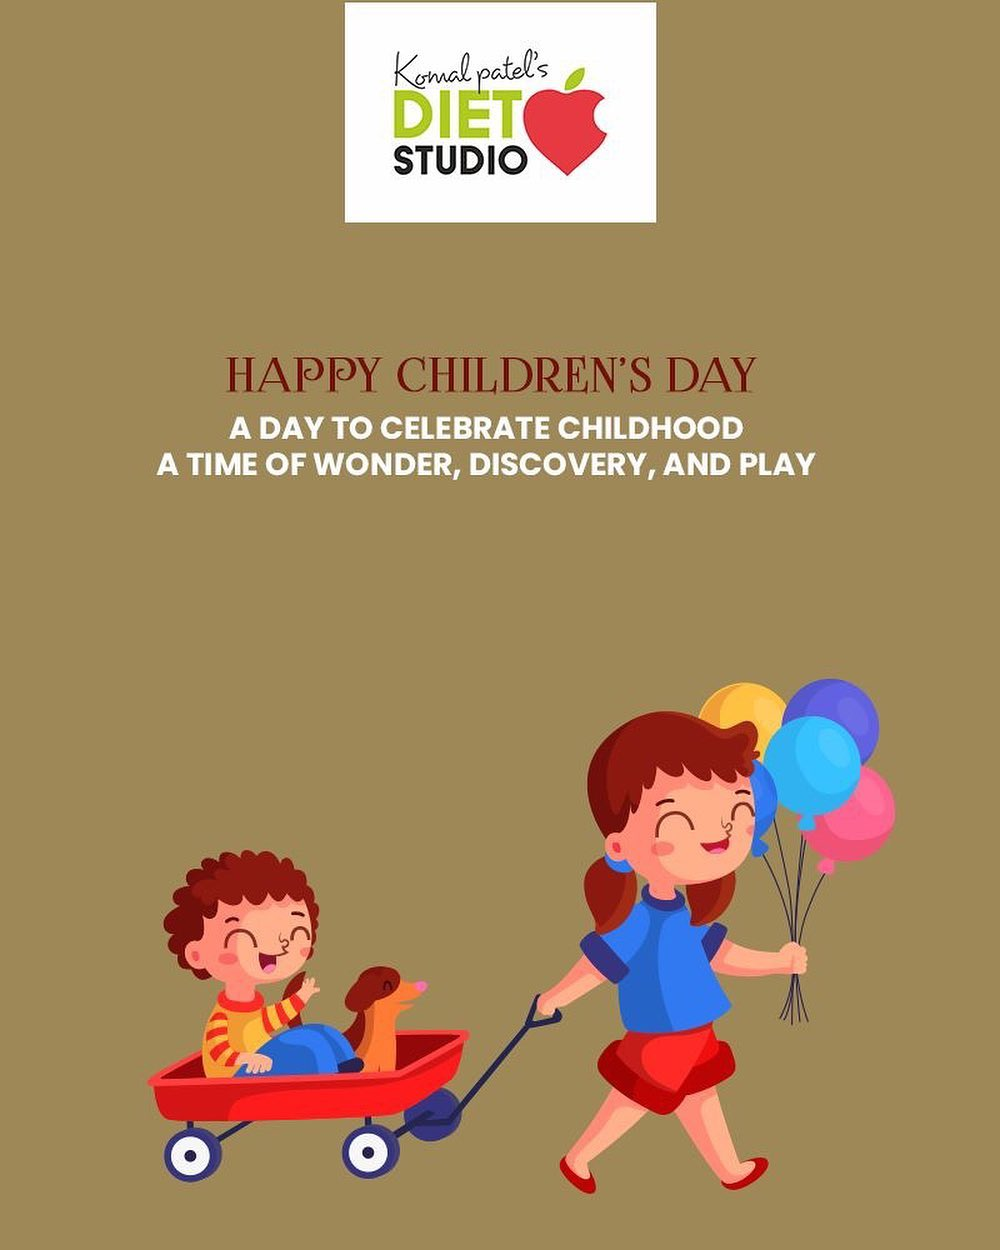 A day to celebrate childhood a time of wonder, discovery, and play.  #HappyChildrensDay #ChildrensDay #komalpatel #diet #goodfood #eathealthy #goodhealth